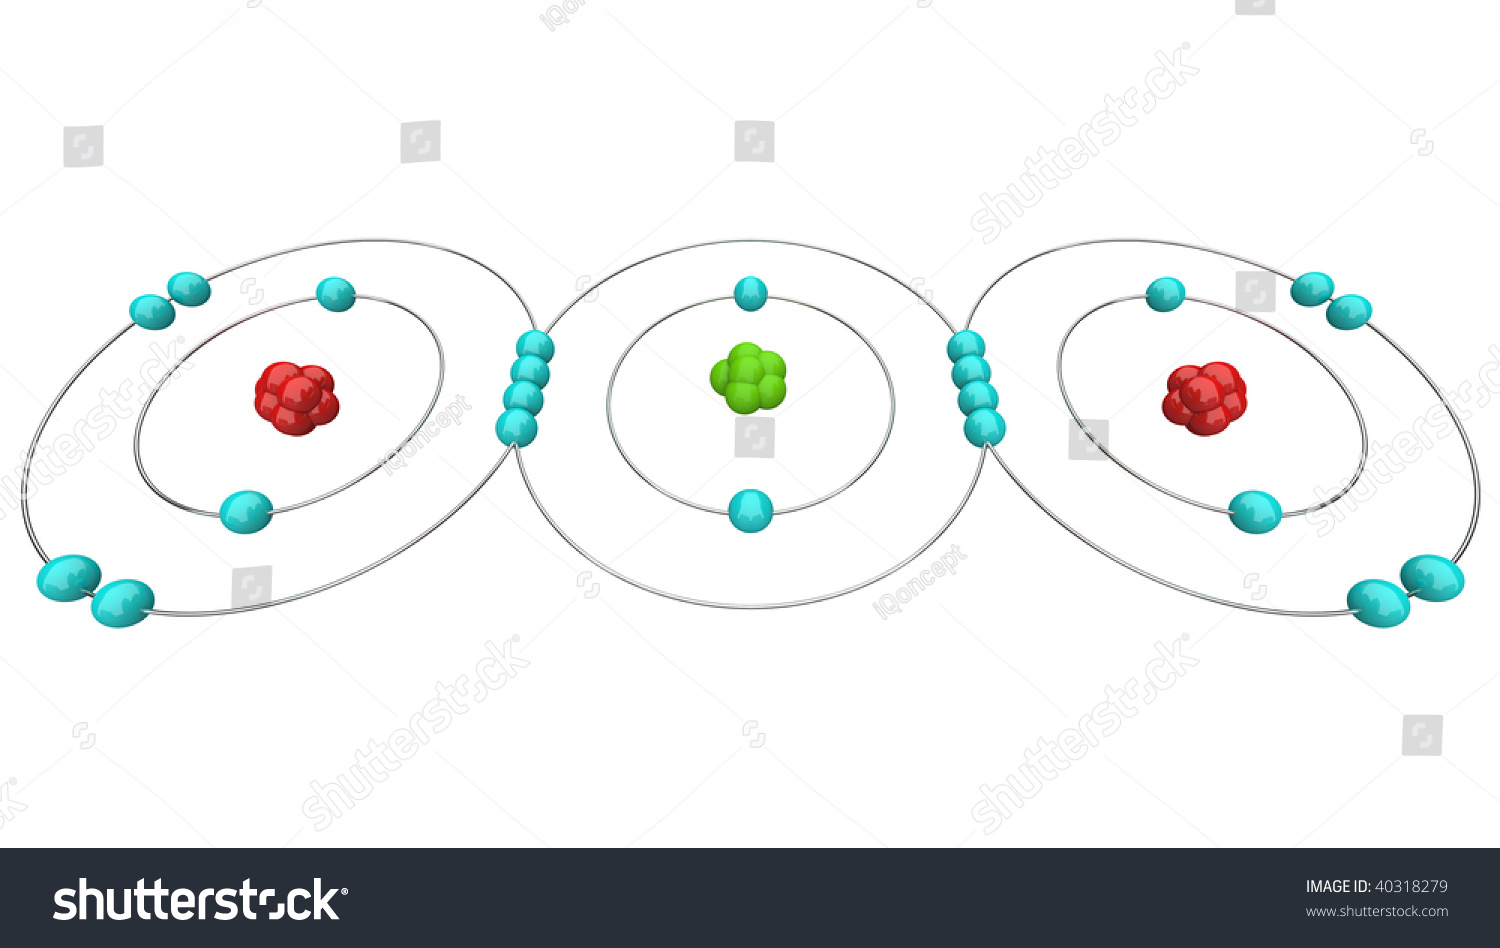 hight resolution of atomic diagram carbon dioxide co 2 showing stock illustration co2 lewis dot co2 electron diagram